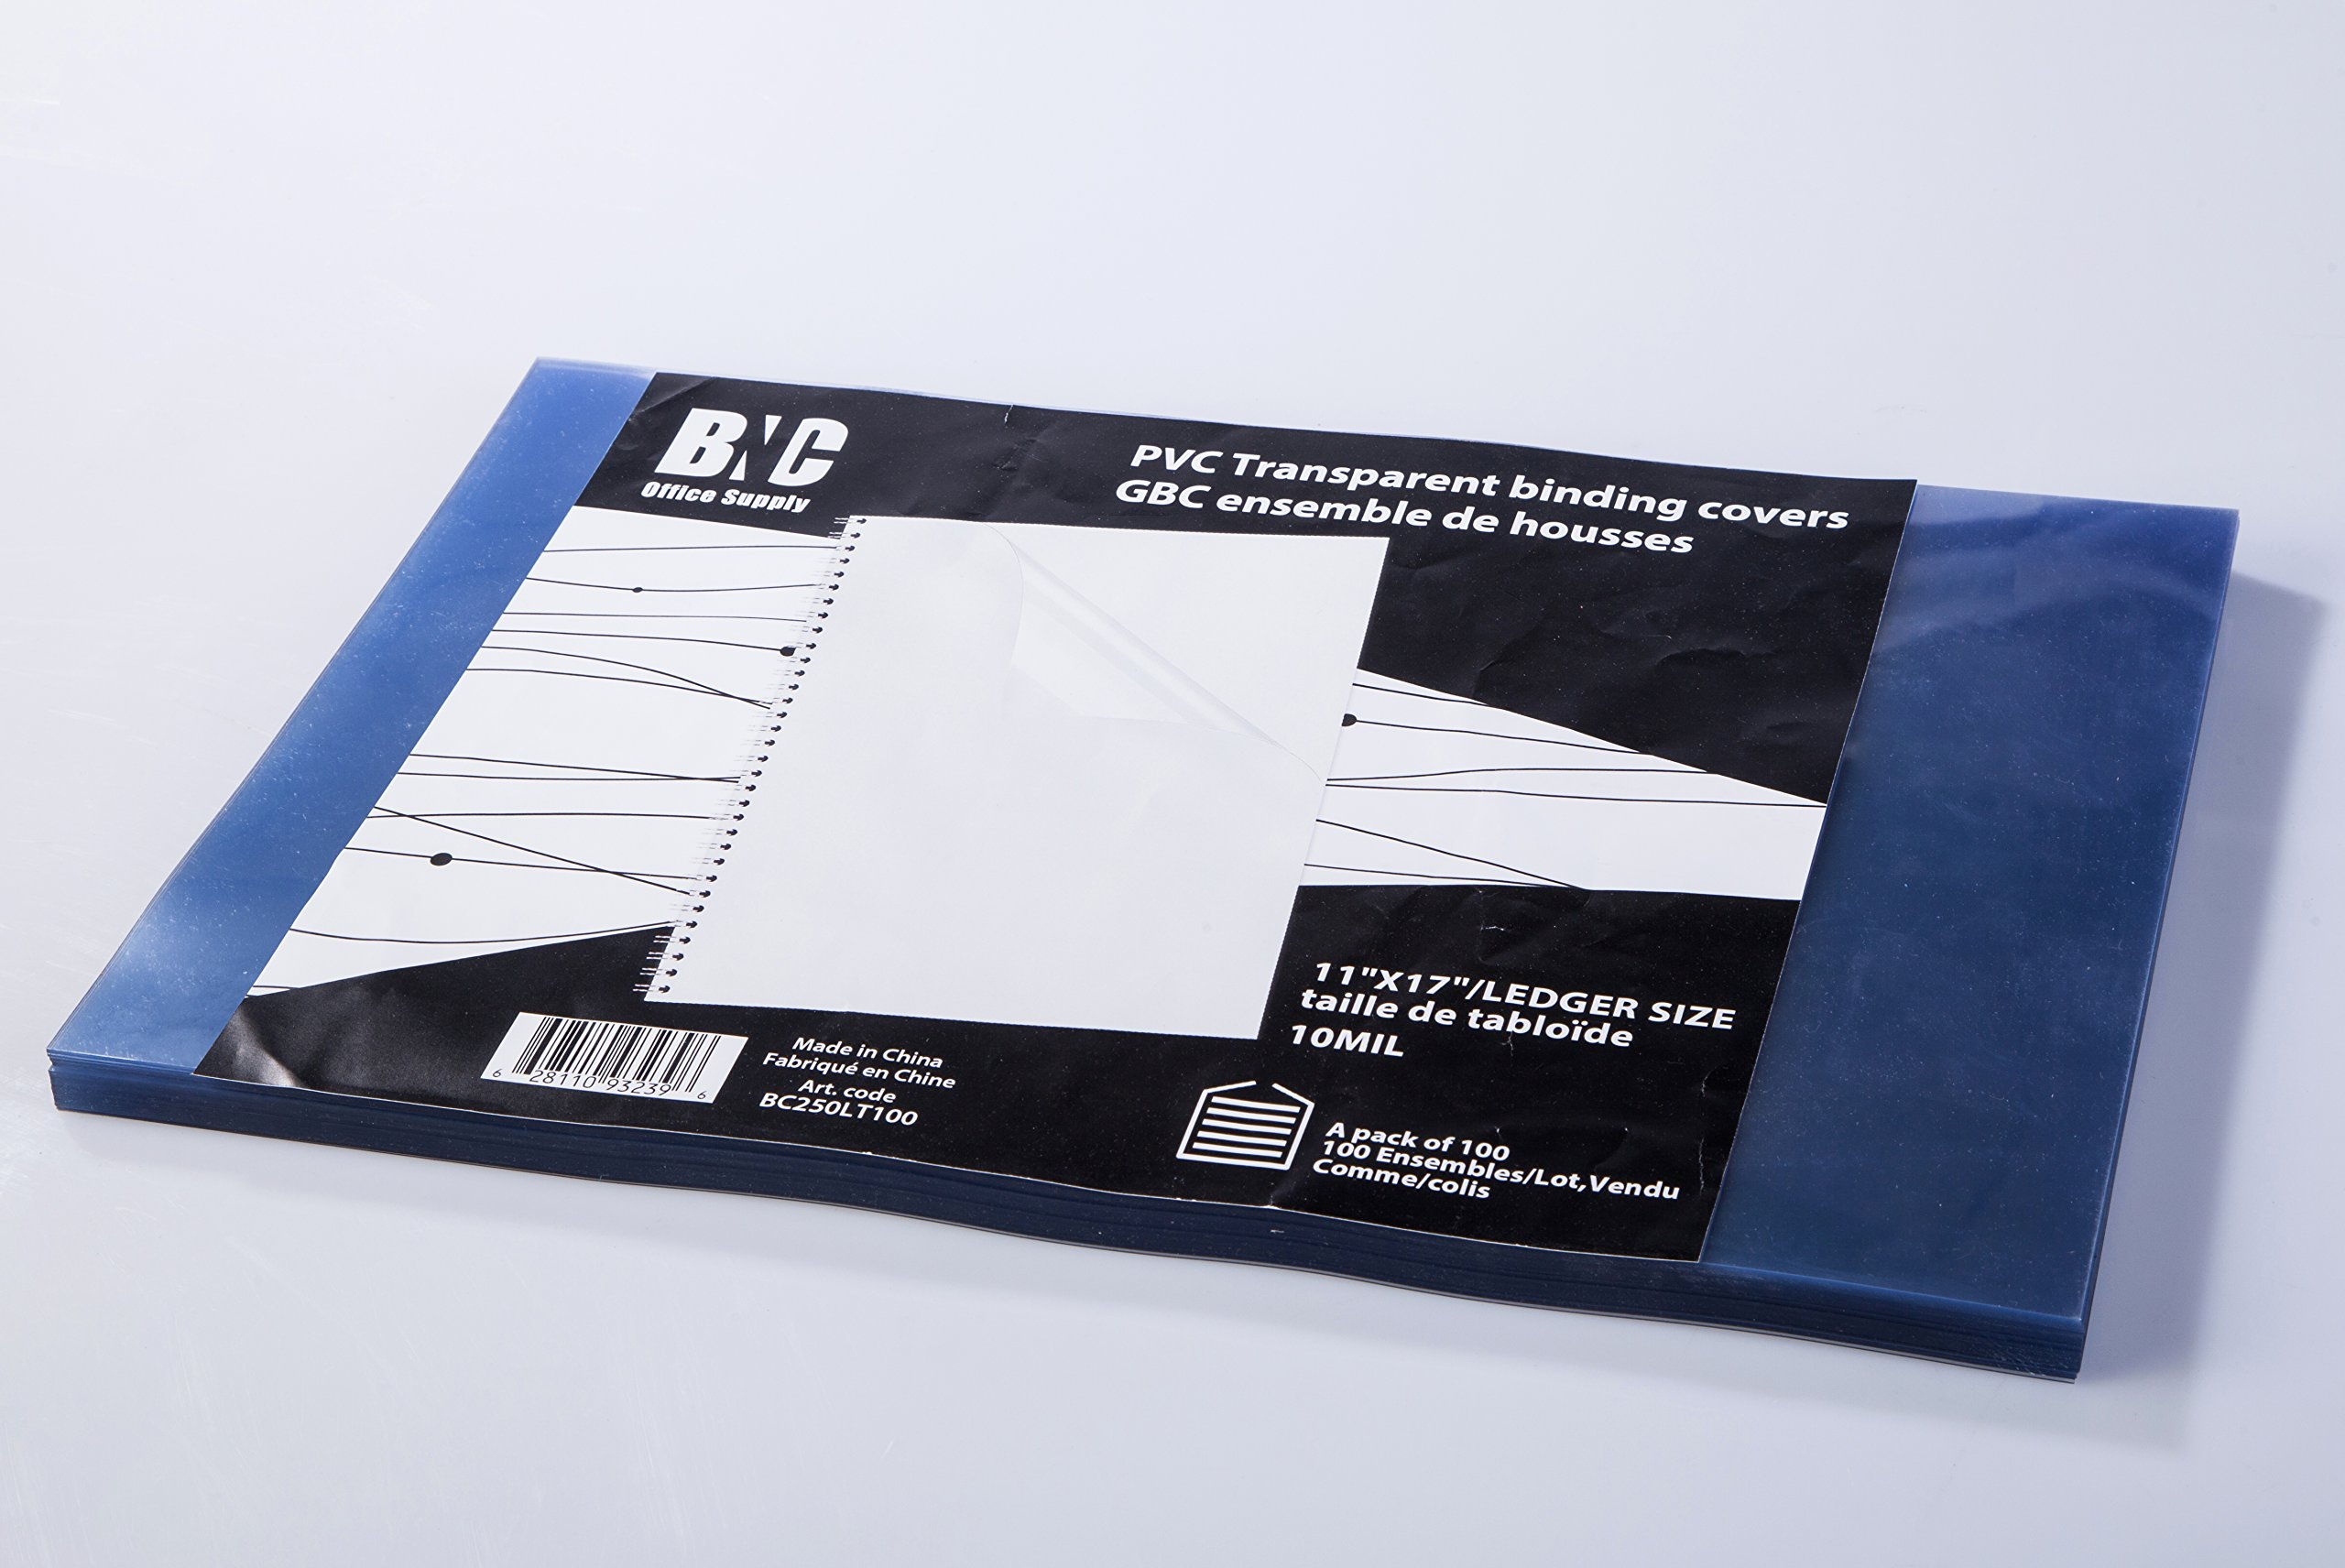 BNC 10 Mil 11X17 Inches, Ledger Size PVC Binding Covers - Pack of 100, Clear (BC250LT100) by BNC Office Supply (Image #2)